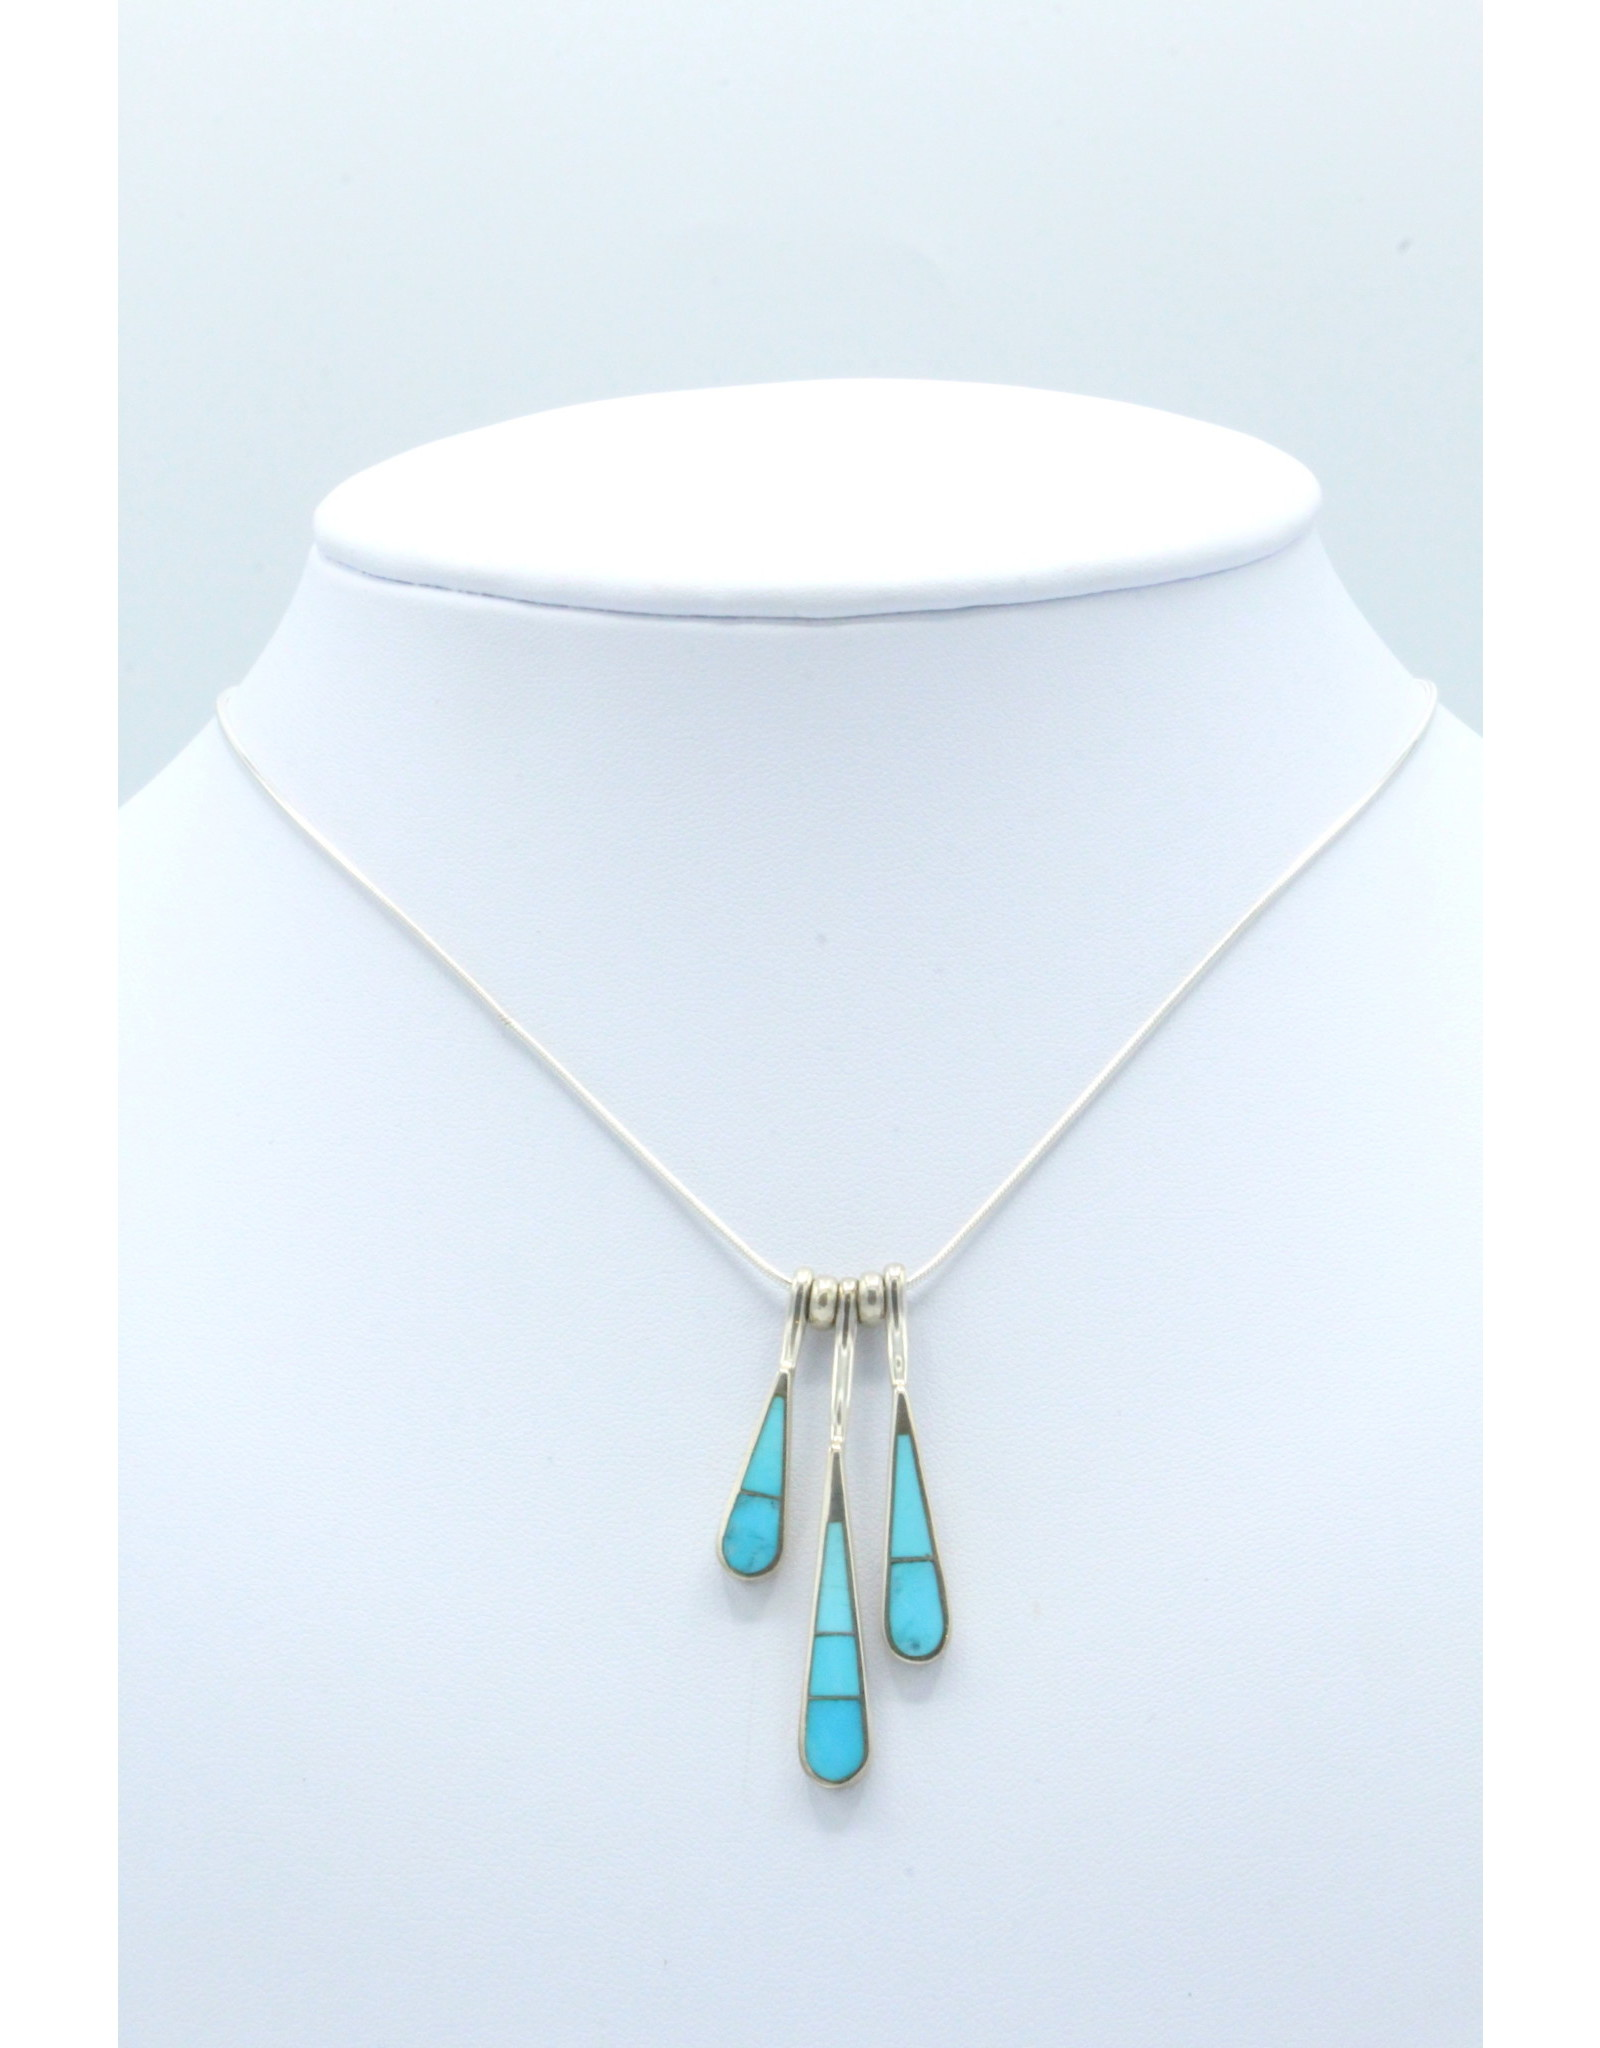 3 Tear Necklace Turquoise - N108-62